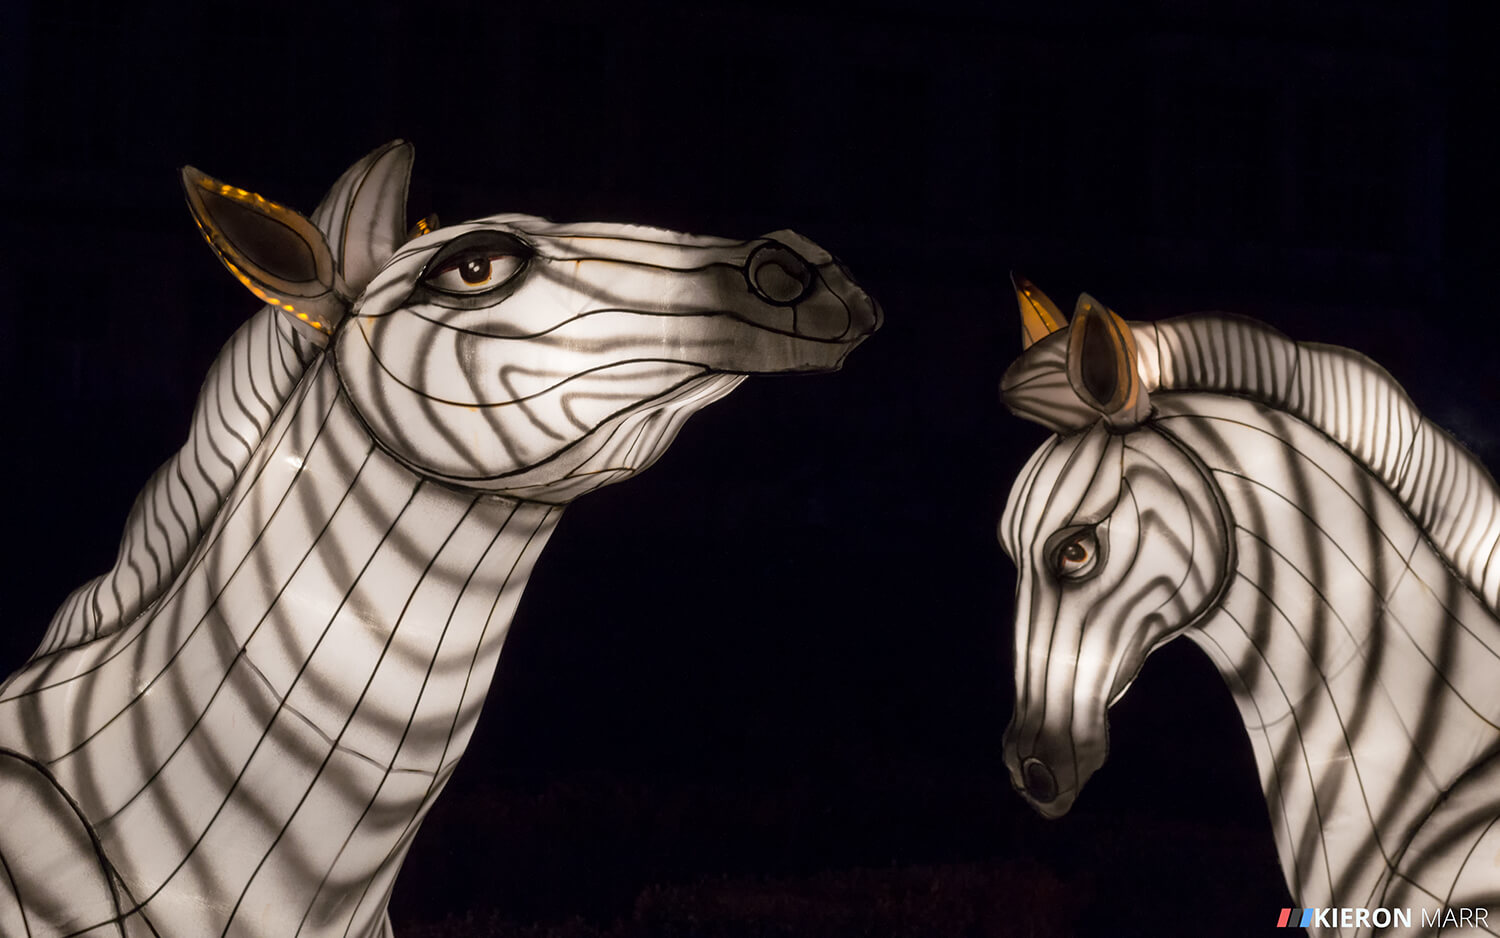 Longleat Festival of Light 2014 - Zebras